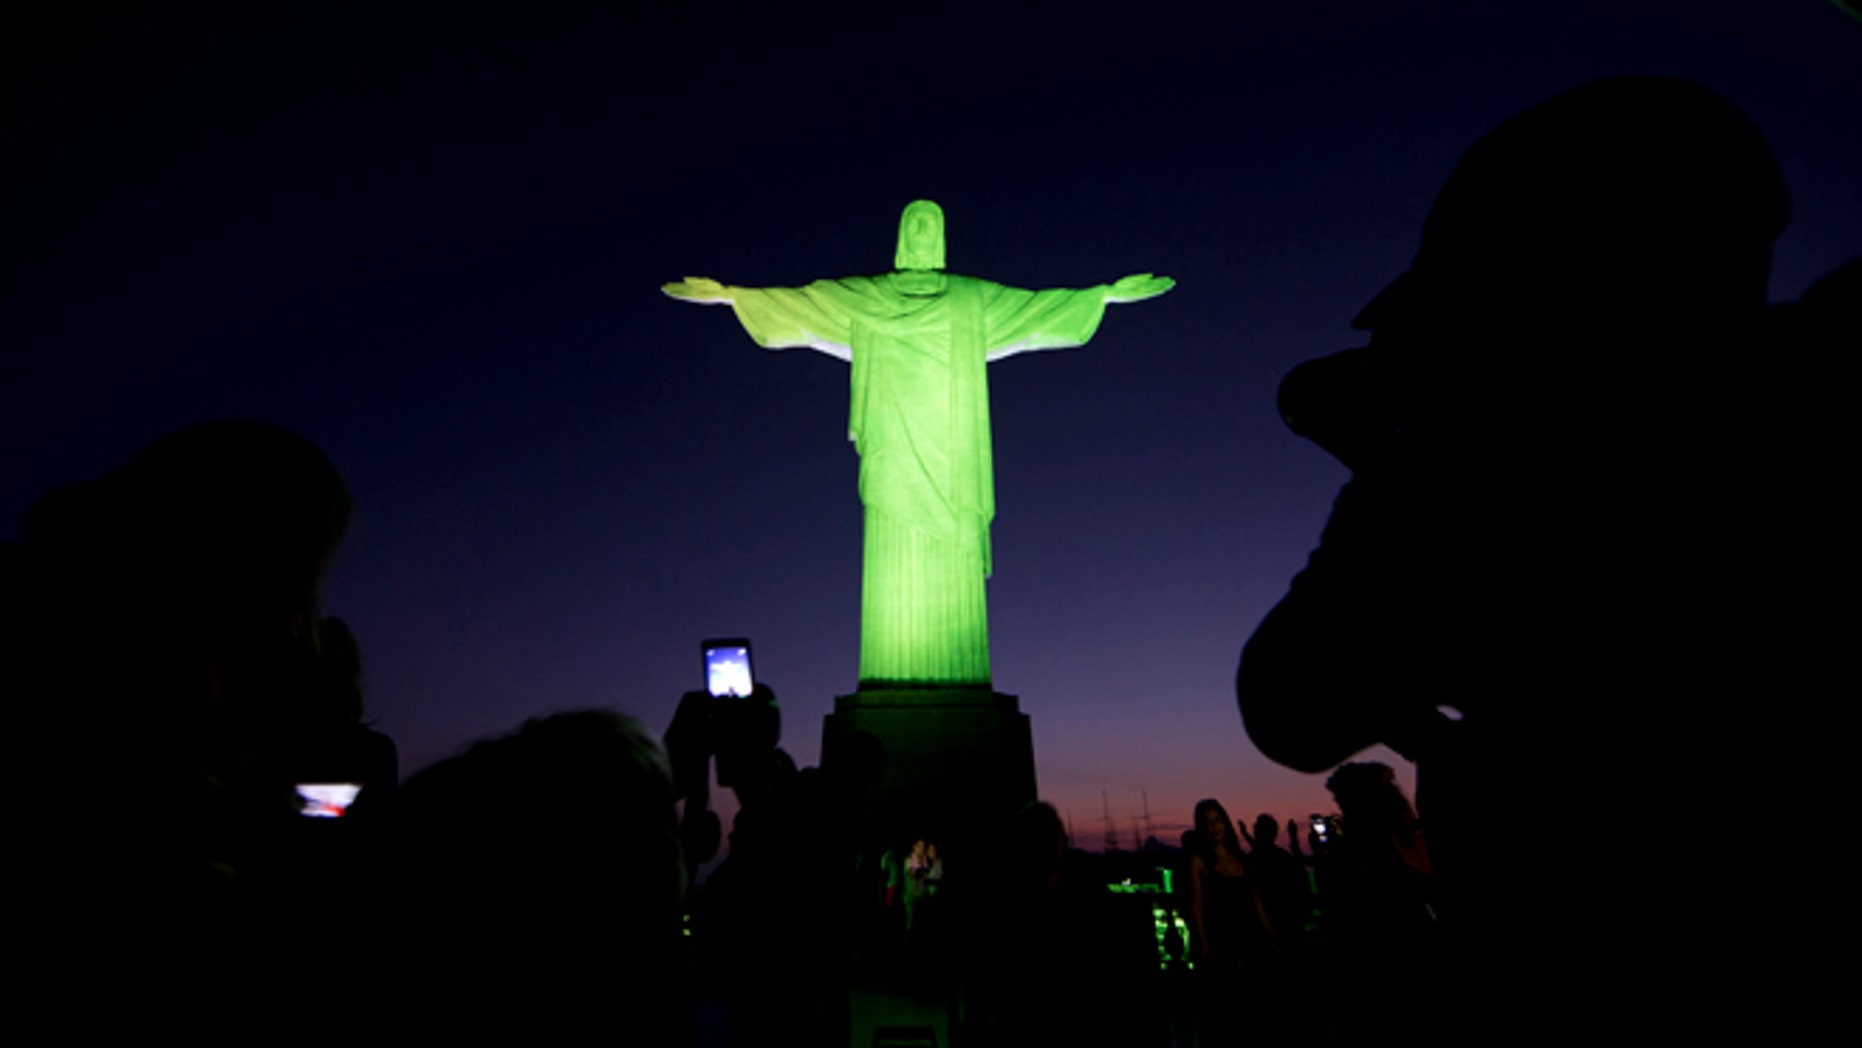 Christ the Redeemer statue is illuminated in green and yellow, the colors of the Brazil's flag, to celebrate the Summer Olympic Games, in Rio de Janeiro, Brazil, Thursday, Aug. 4, 2016. (AP Photo/Joao Laet)